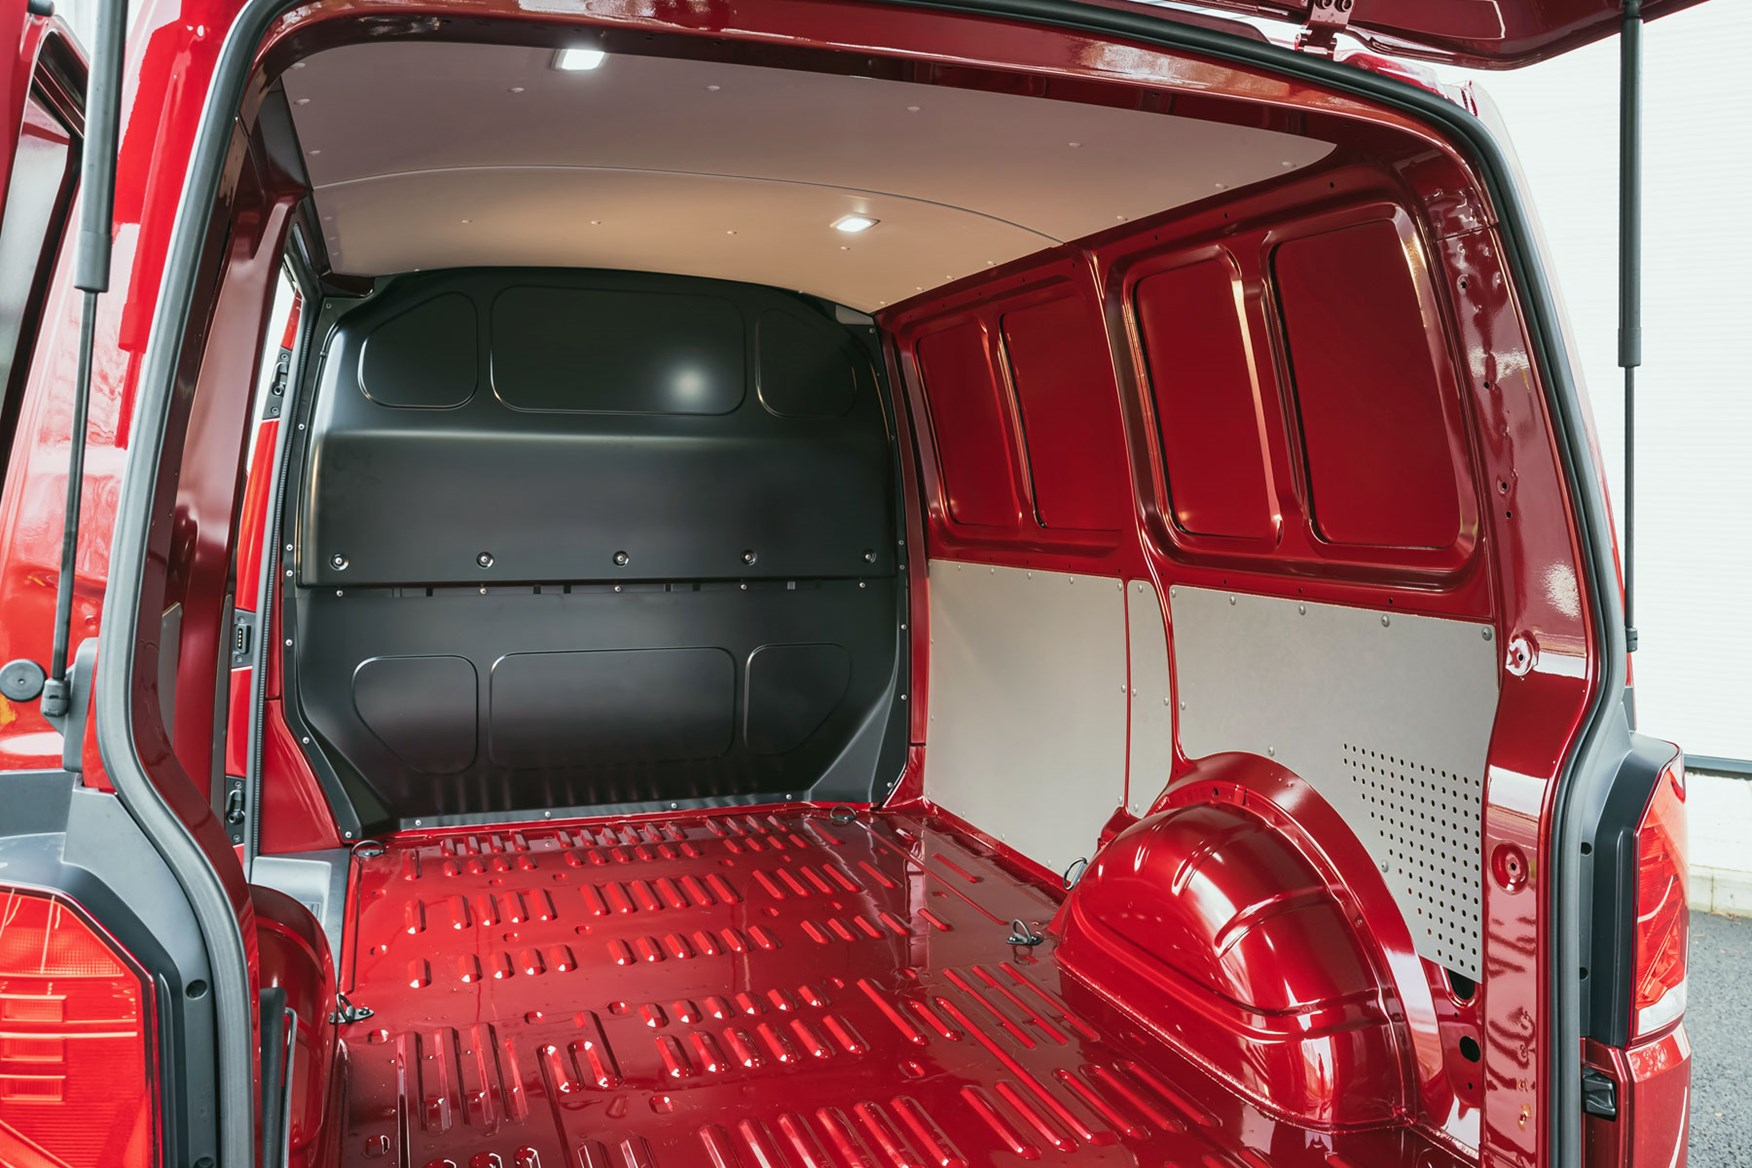 VW Transporter T6.1 load area, view from rear doors, red, 2020